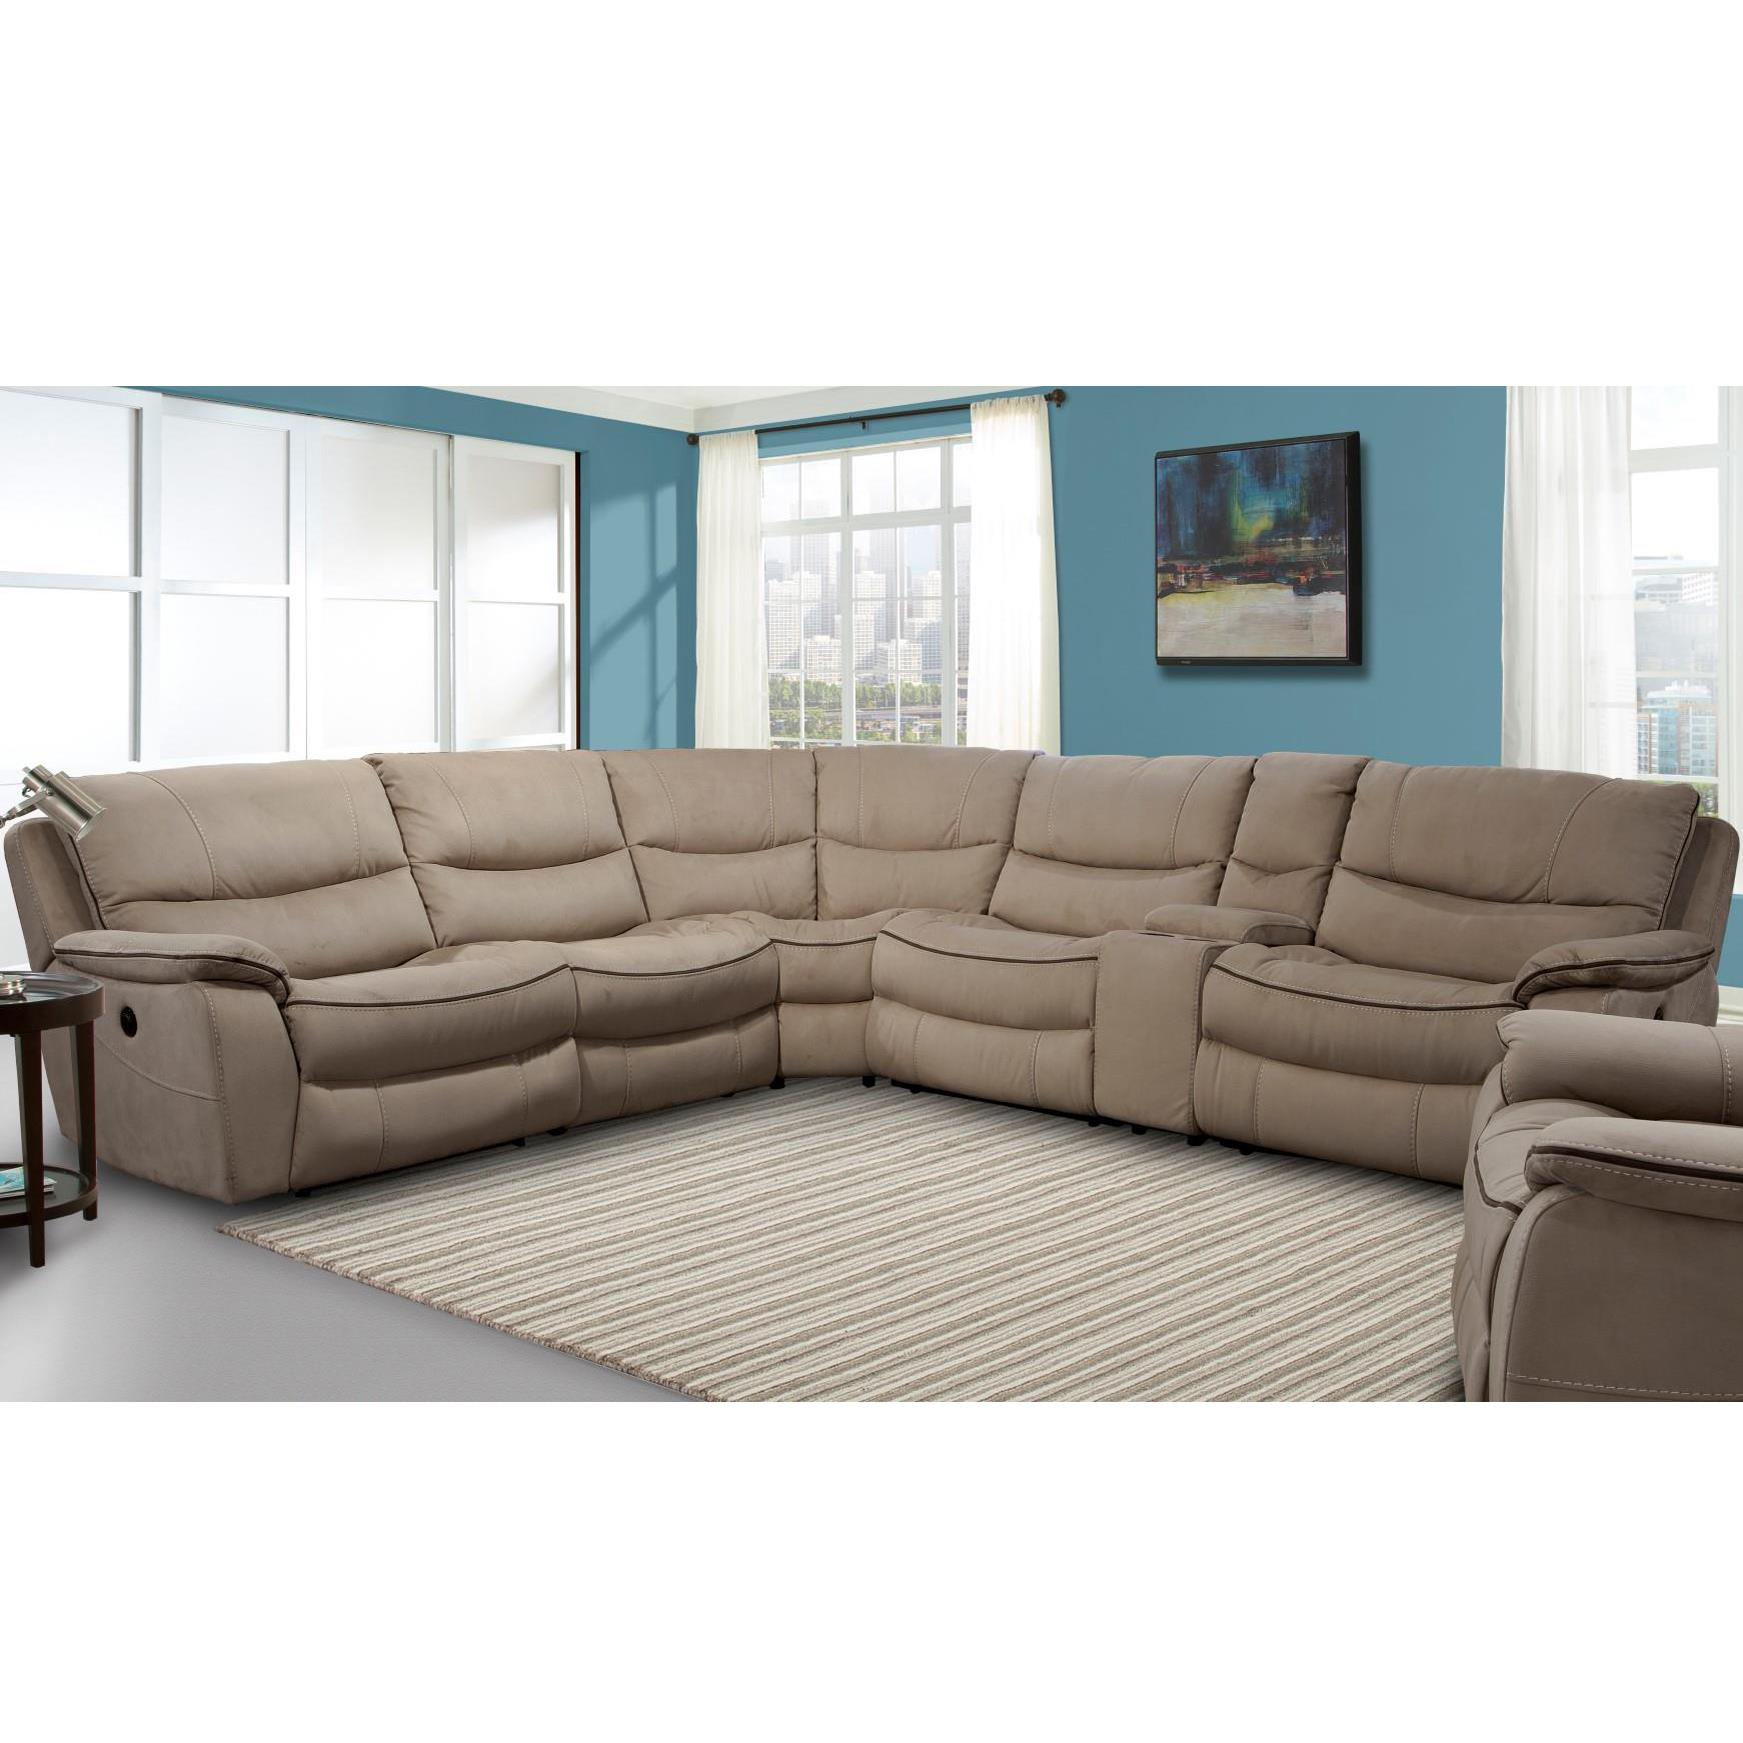 Parker Living Remus Casual Power Sectional Recliner - Item Number: MREM-PACKM-MO